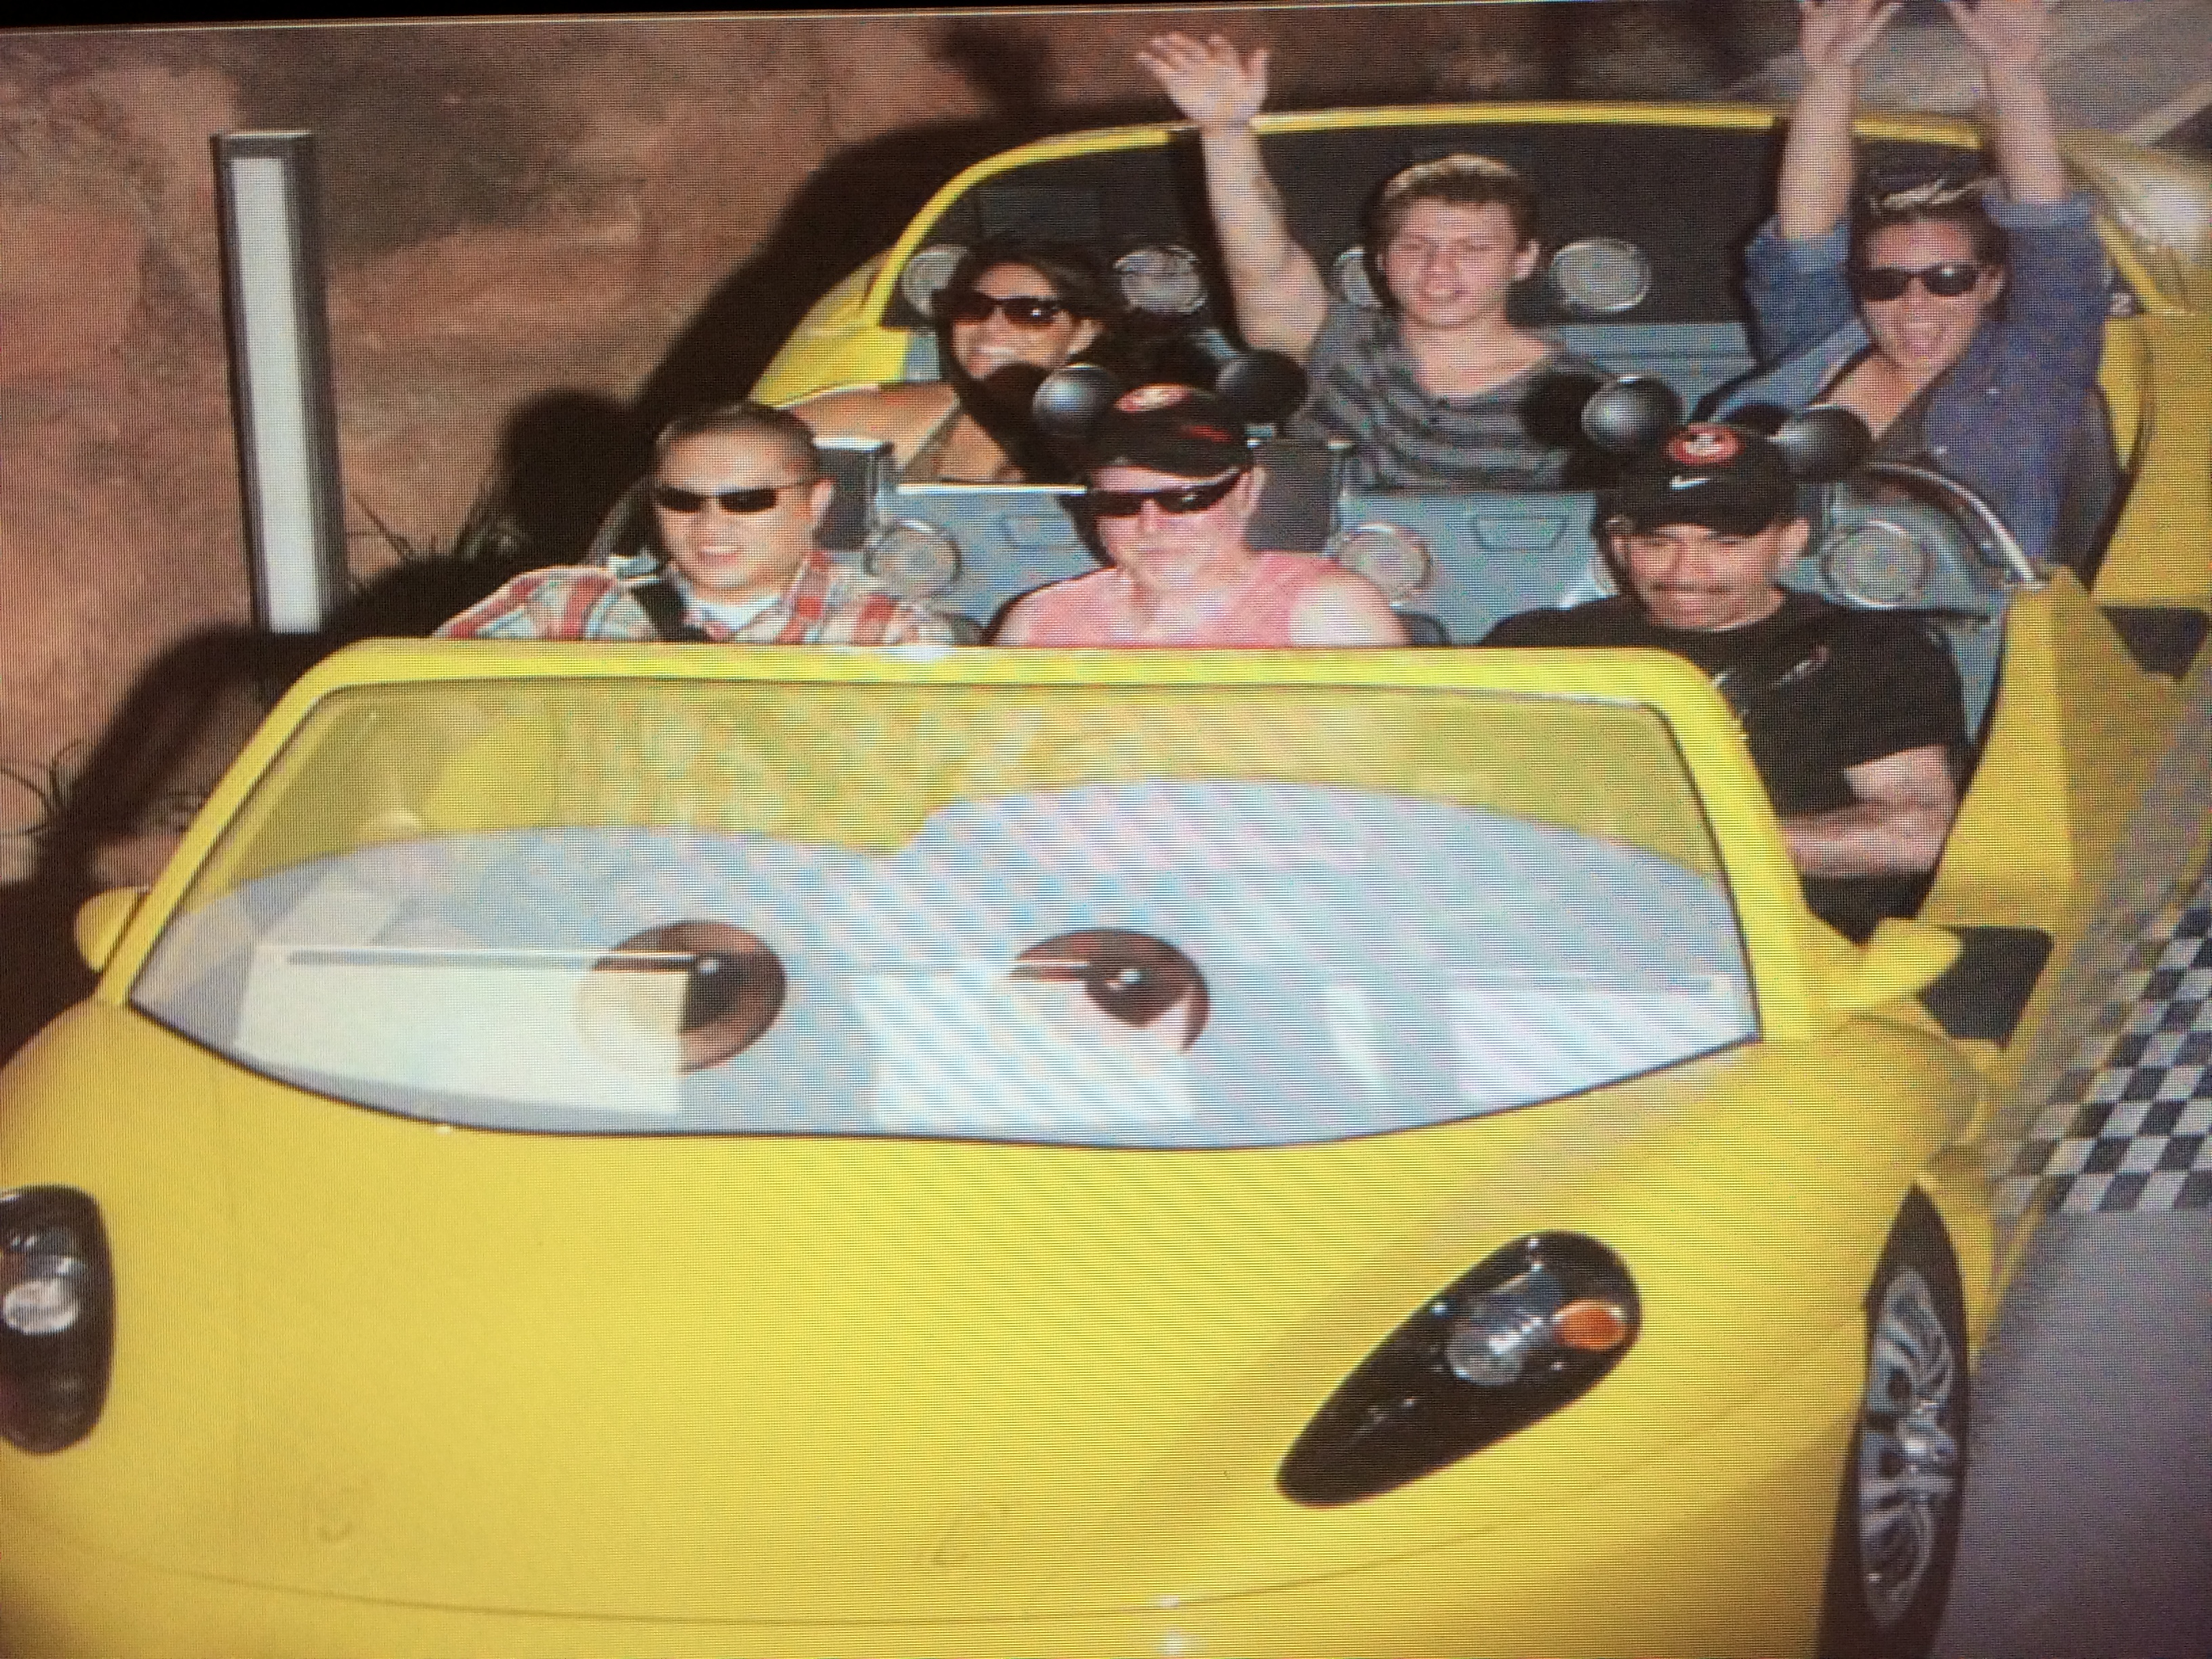 Having fun in Cars Land - the Radiator Springs Racers